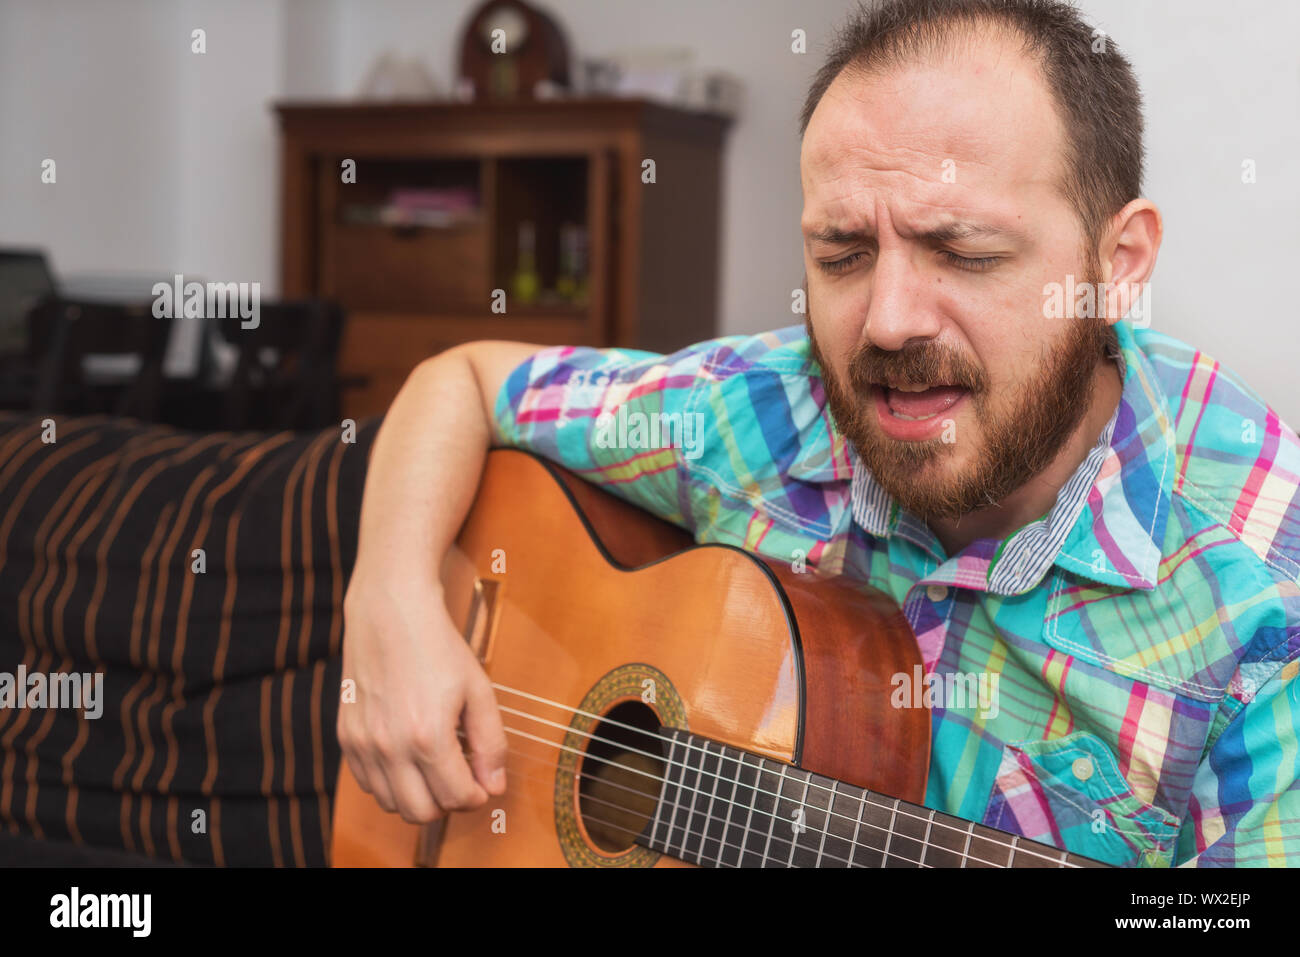 Young man musician playing acoustic guitar - Stock Photo